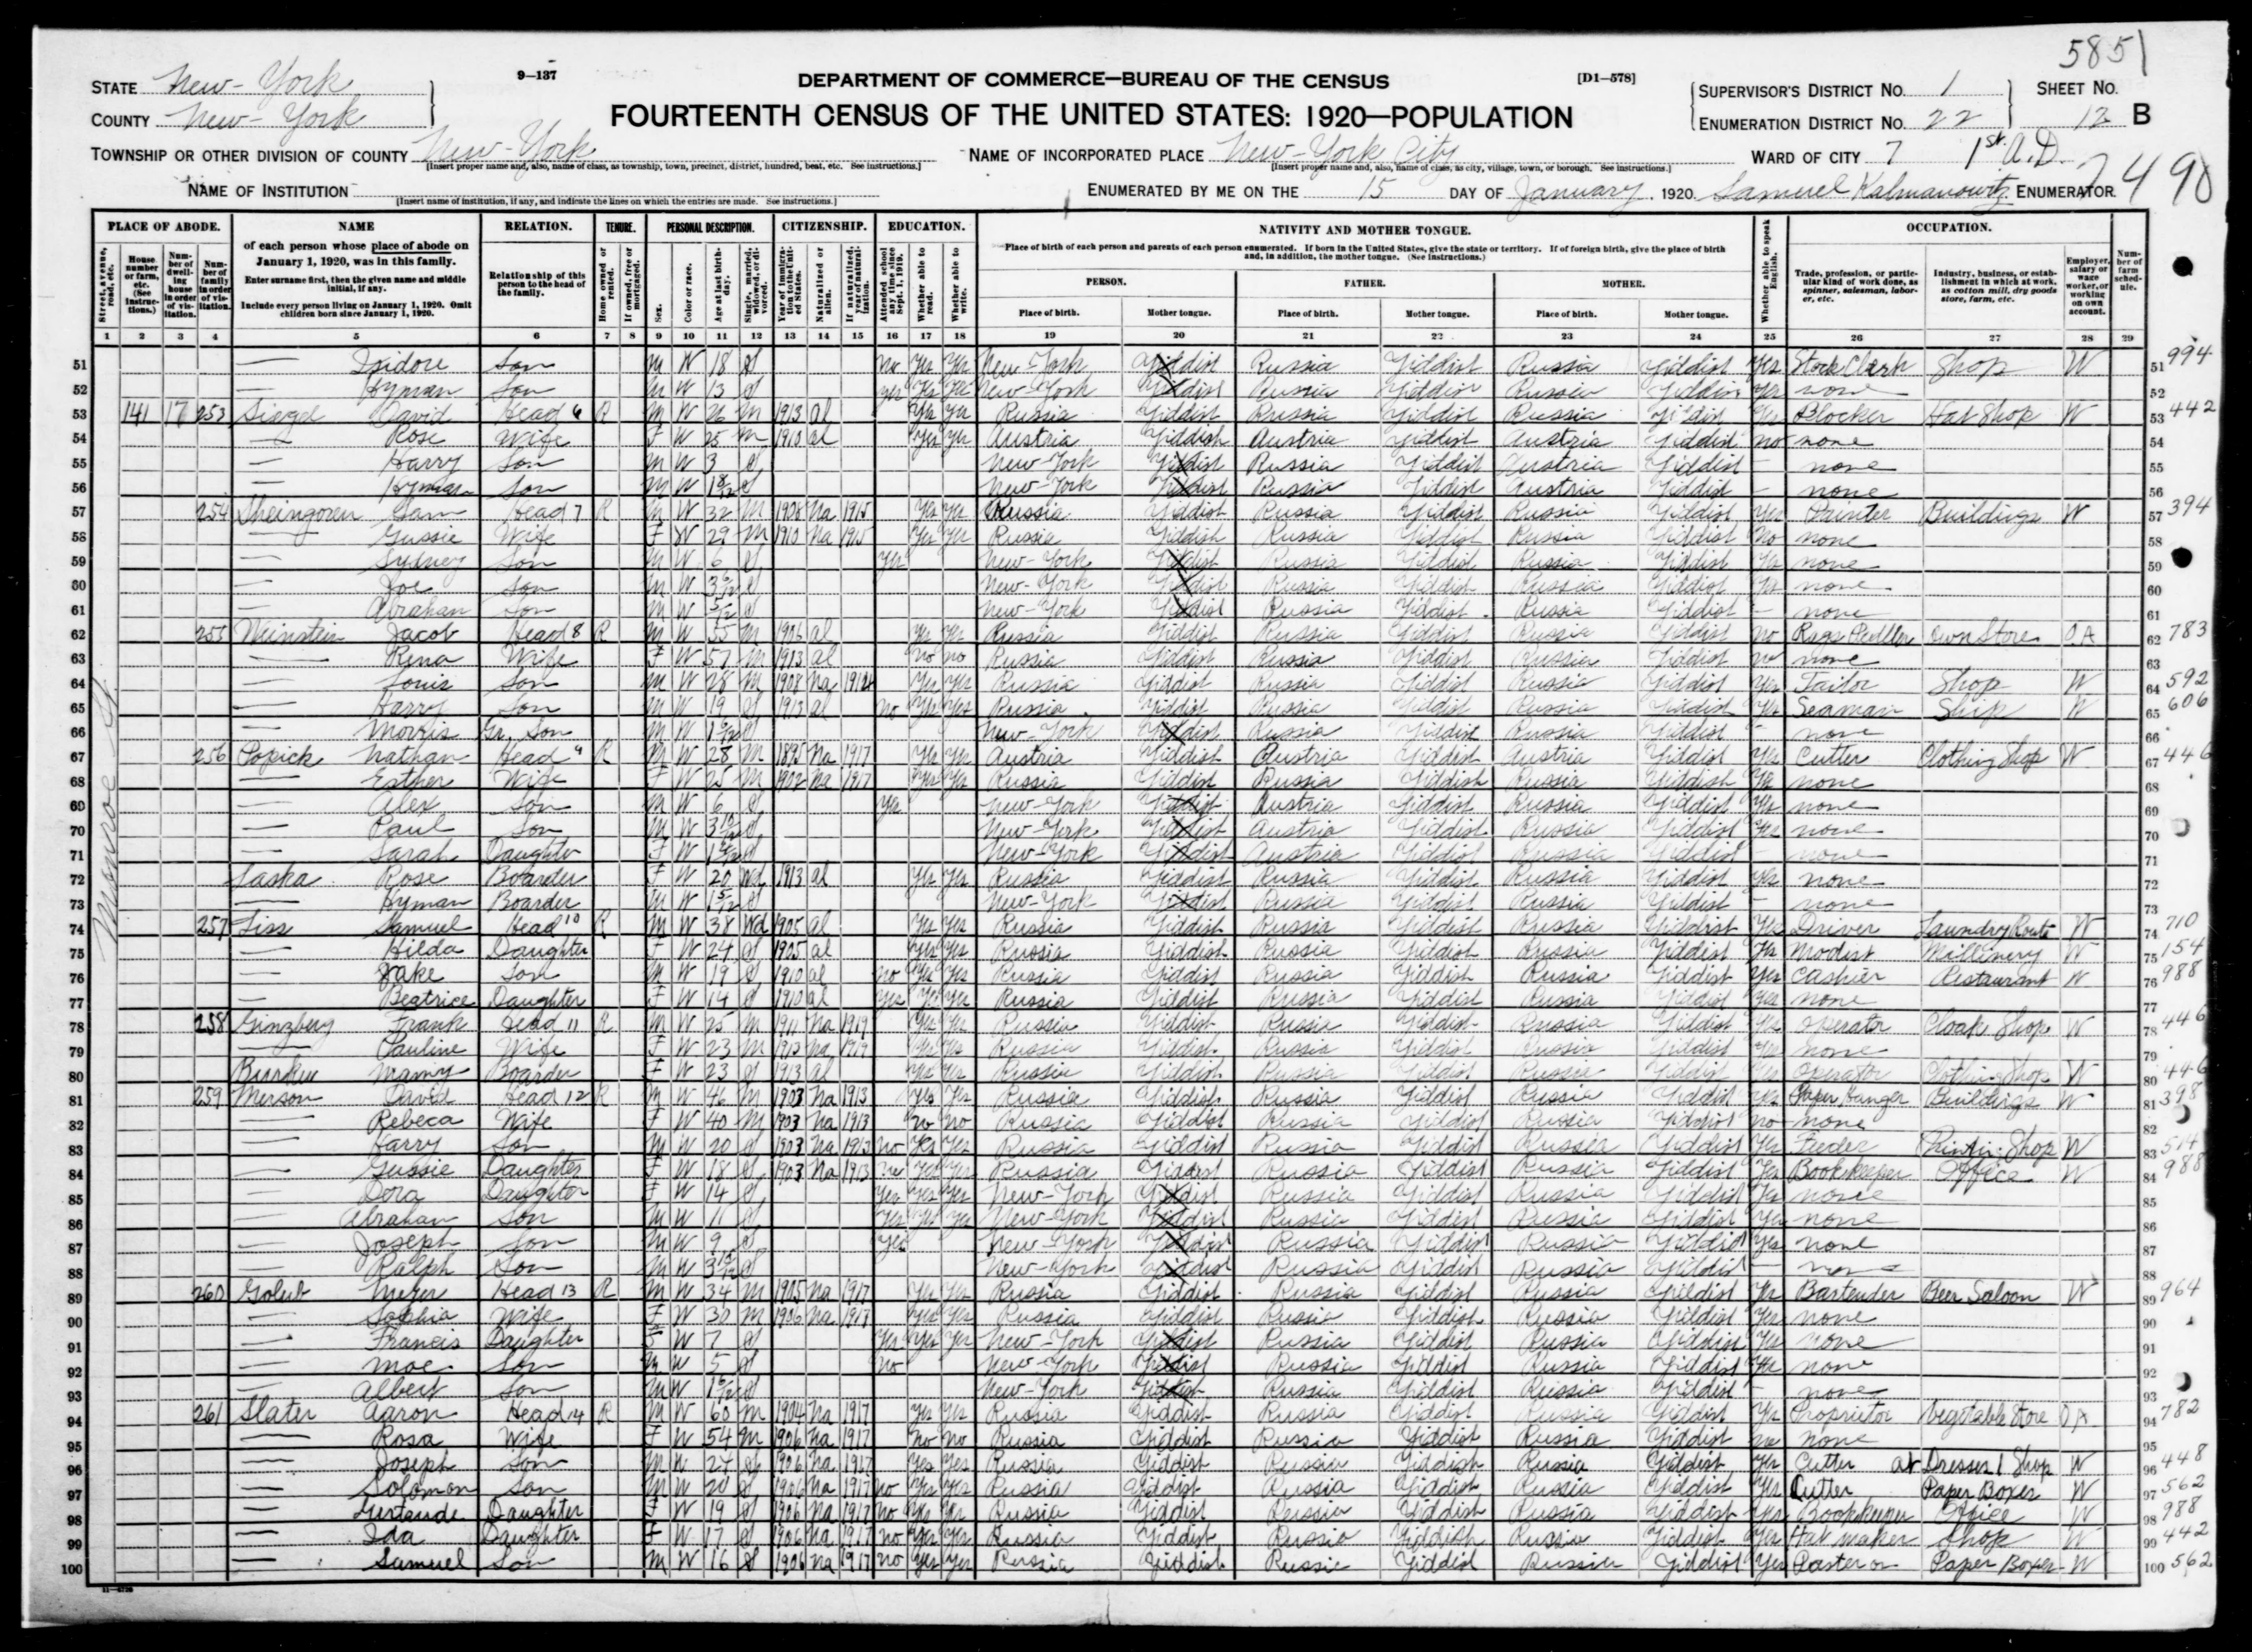 New York: NEW YORK County, Enumeration District 22, Sheet No. 12B